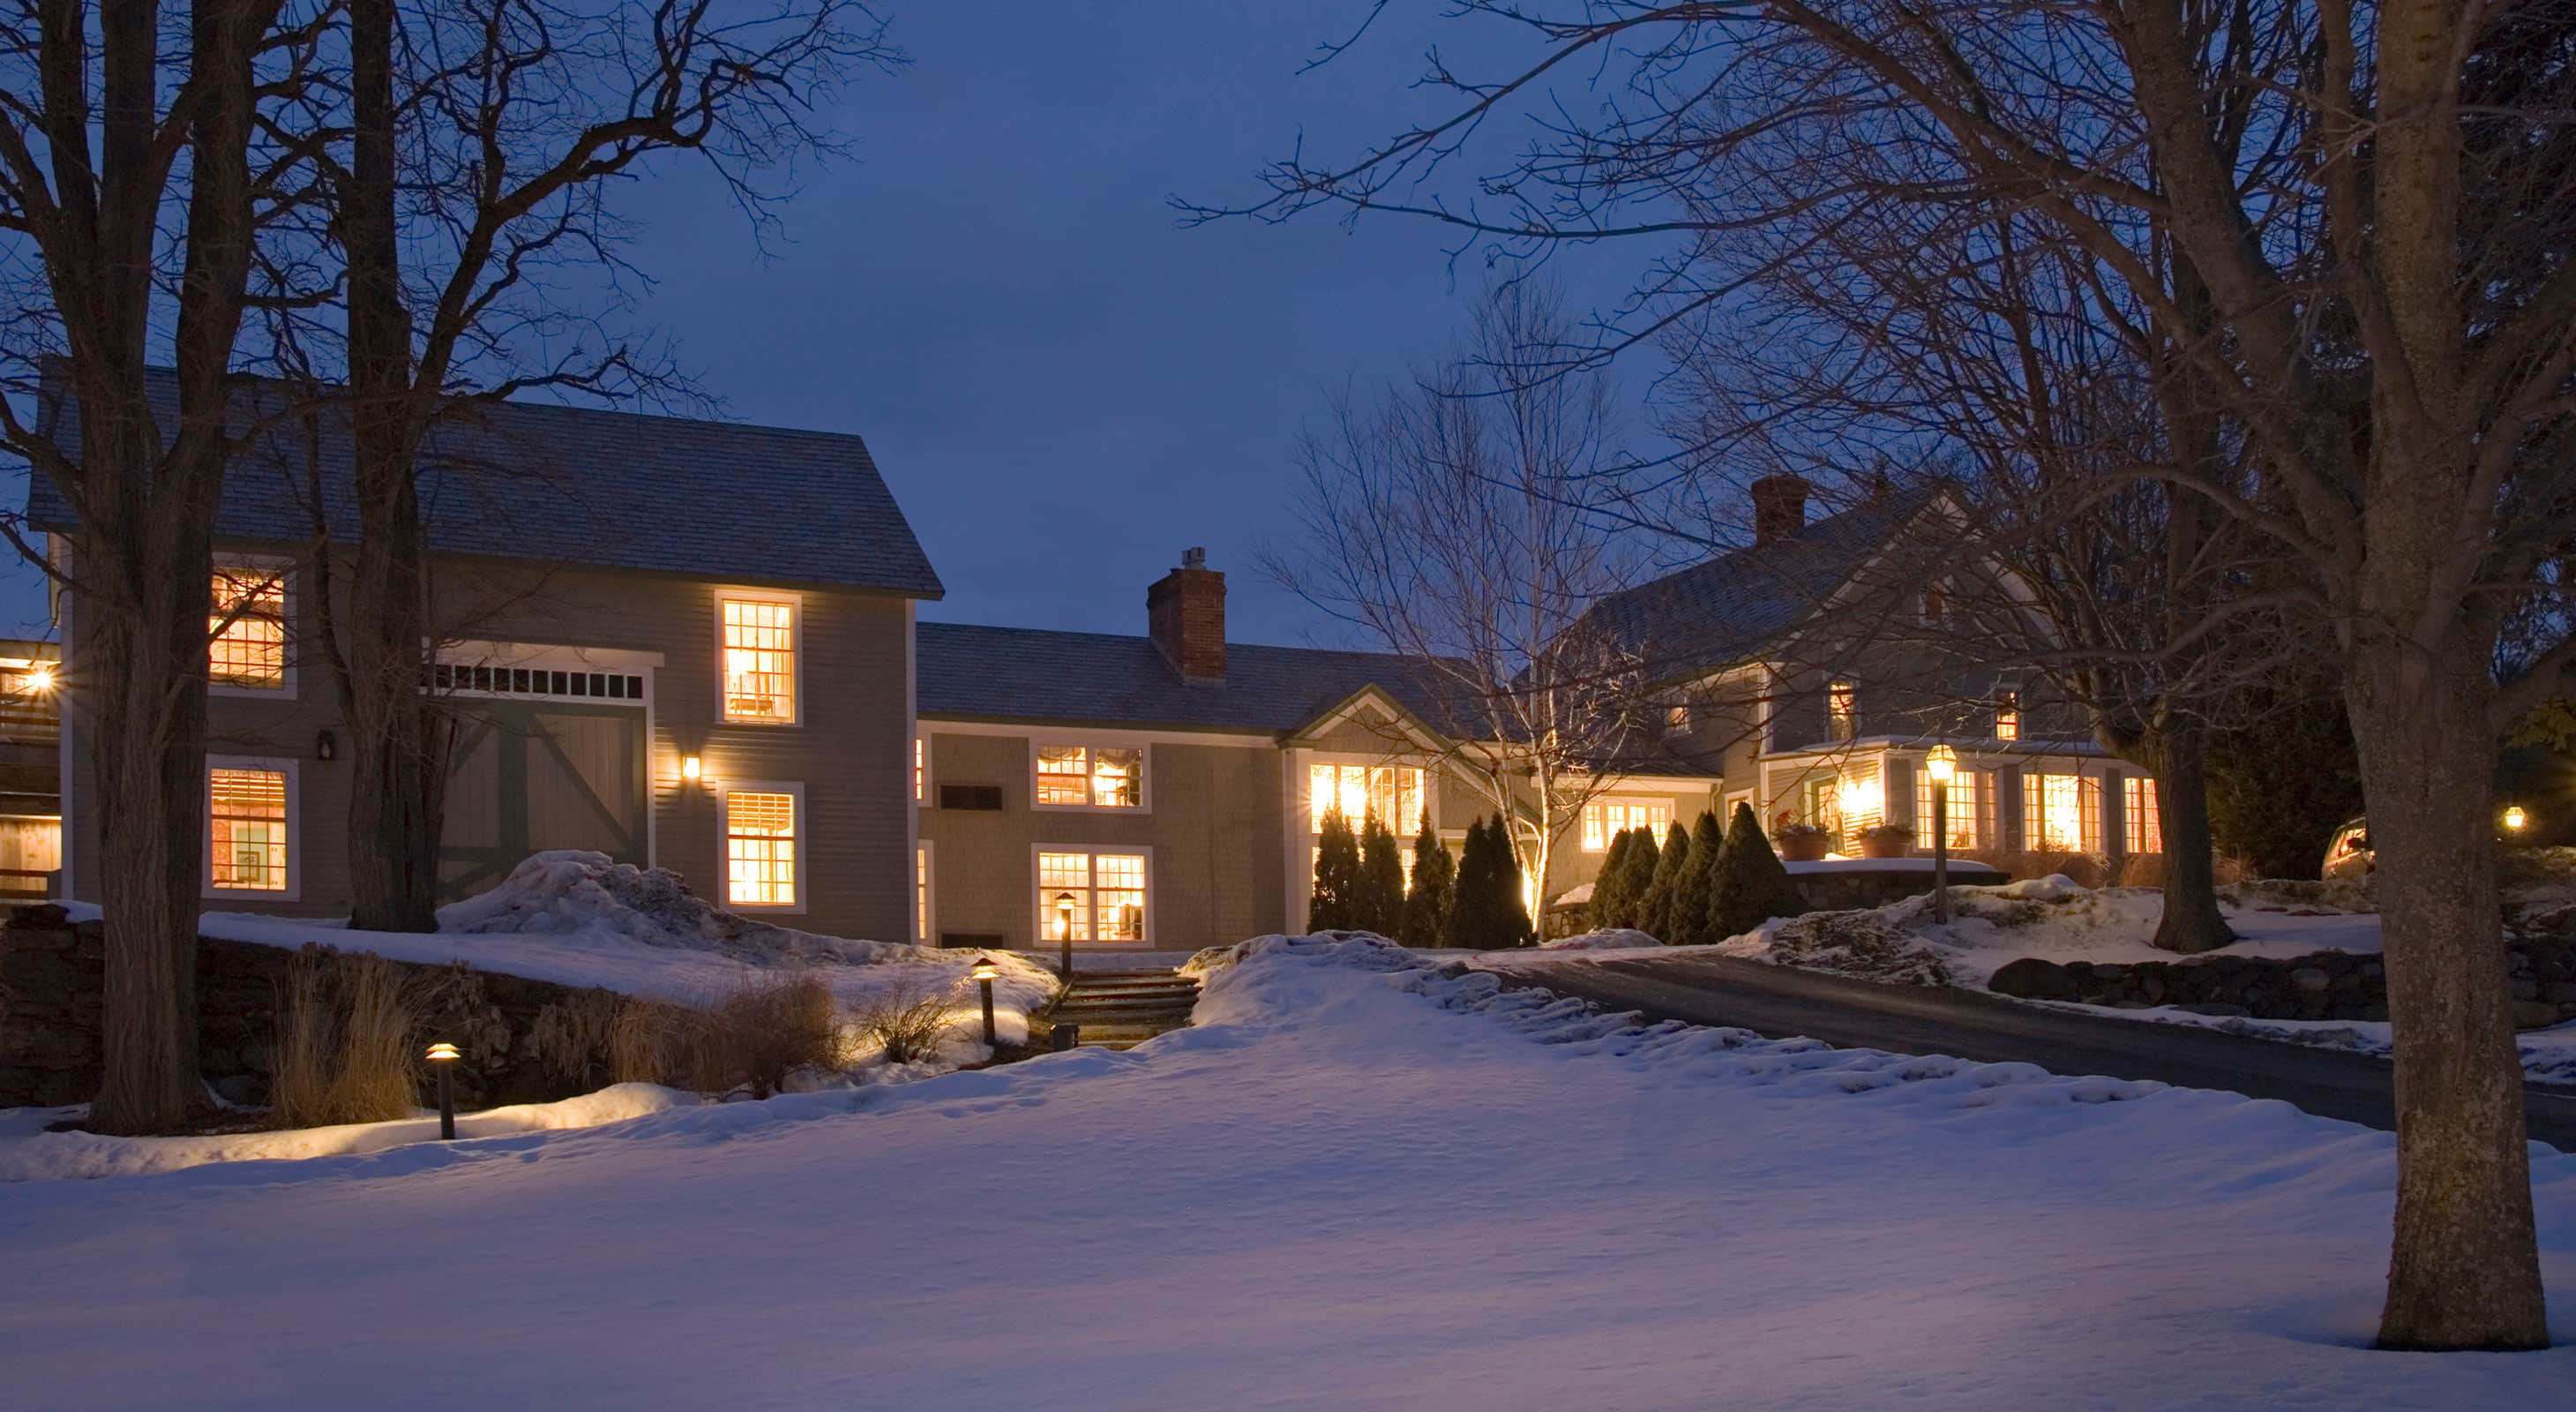 Exterior of Chesterfield Inn on at Twilight in Winter